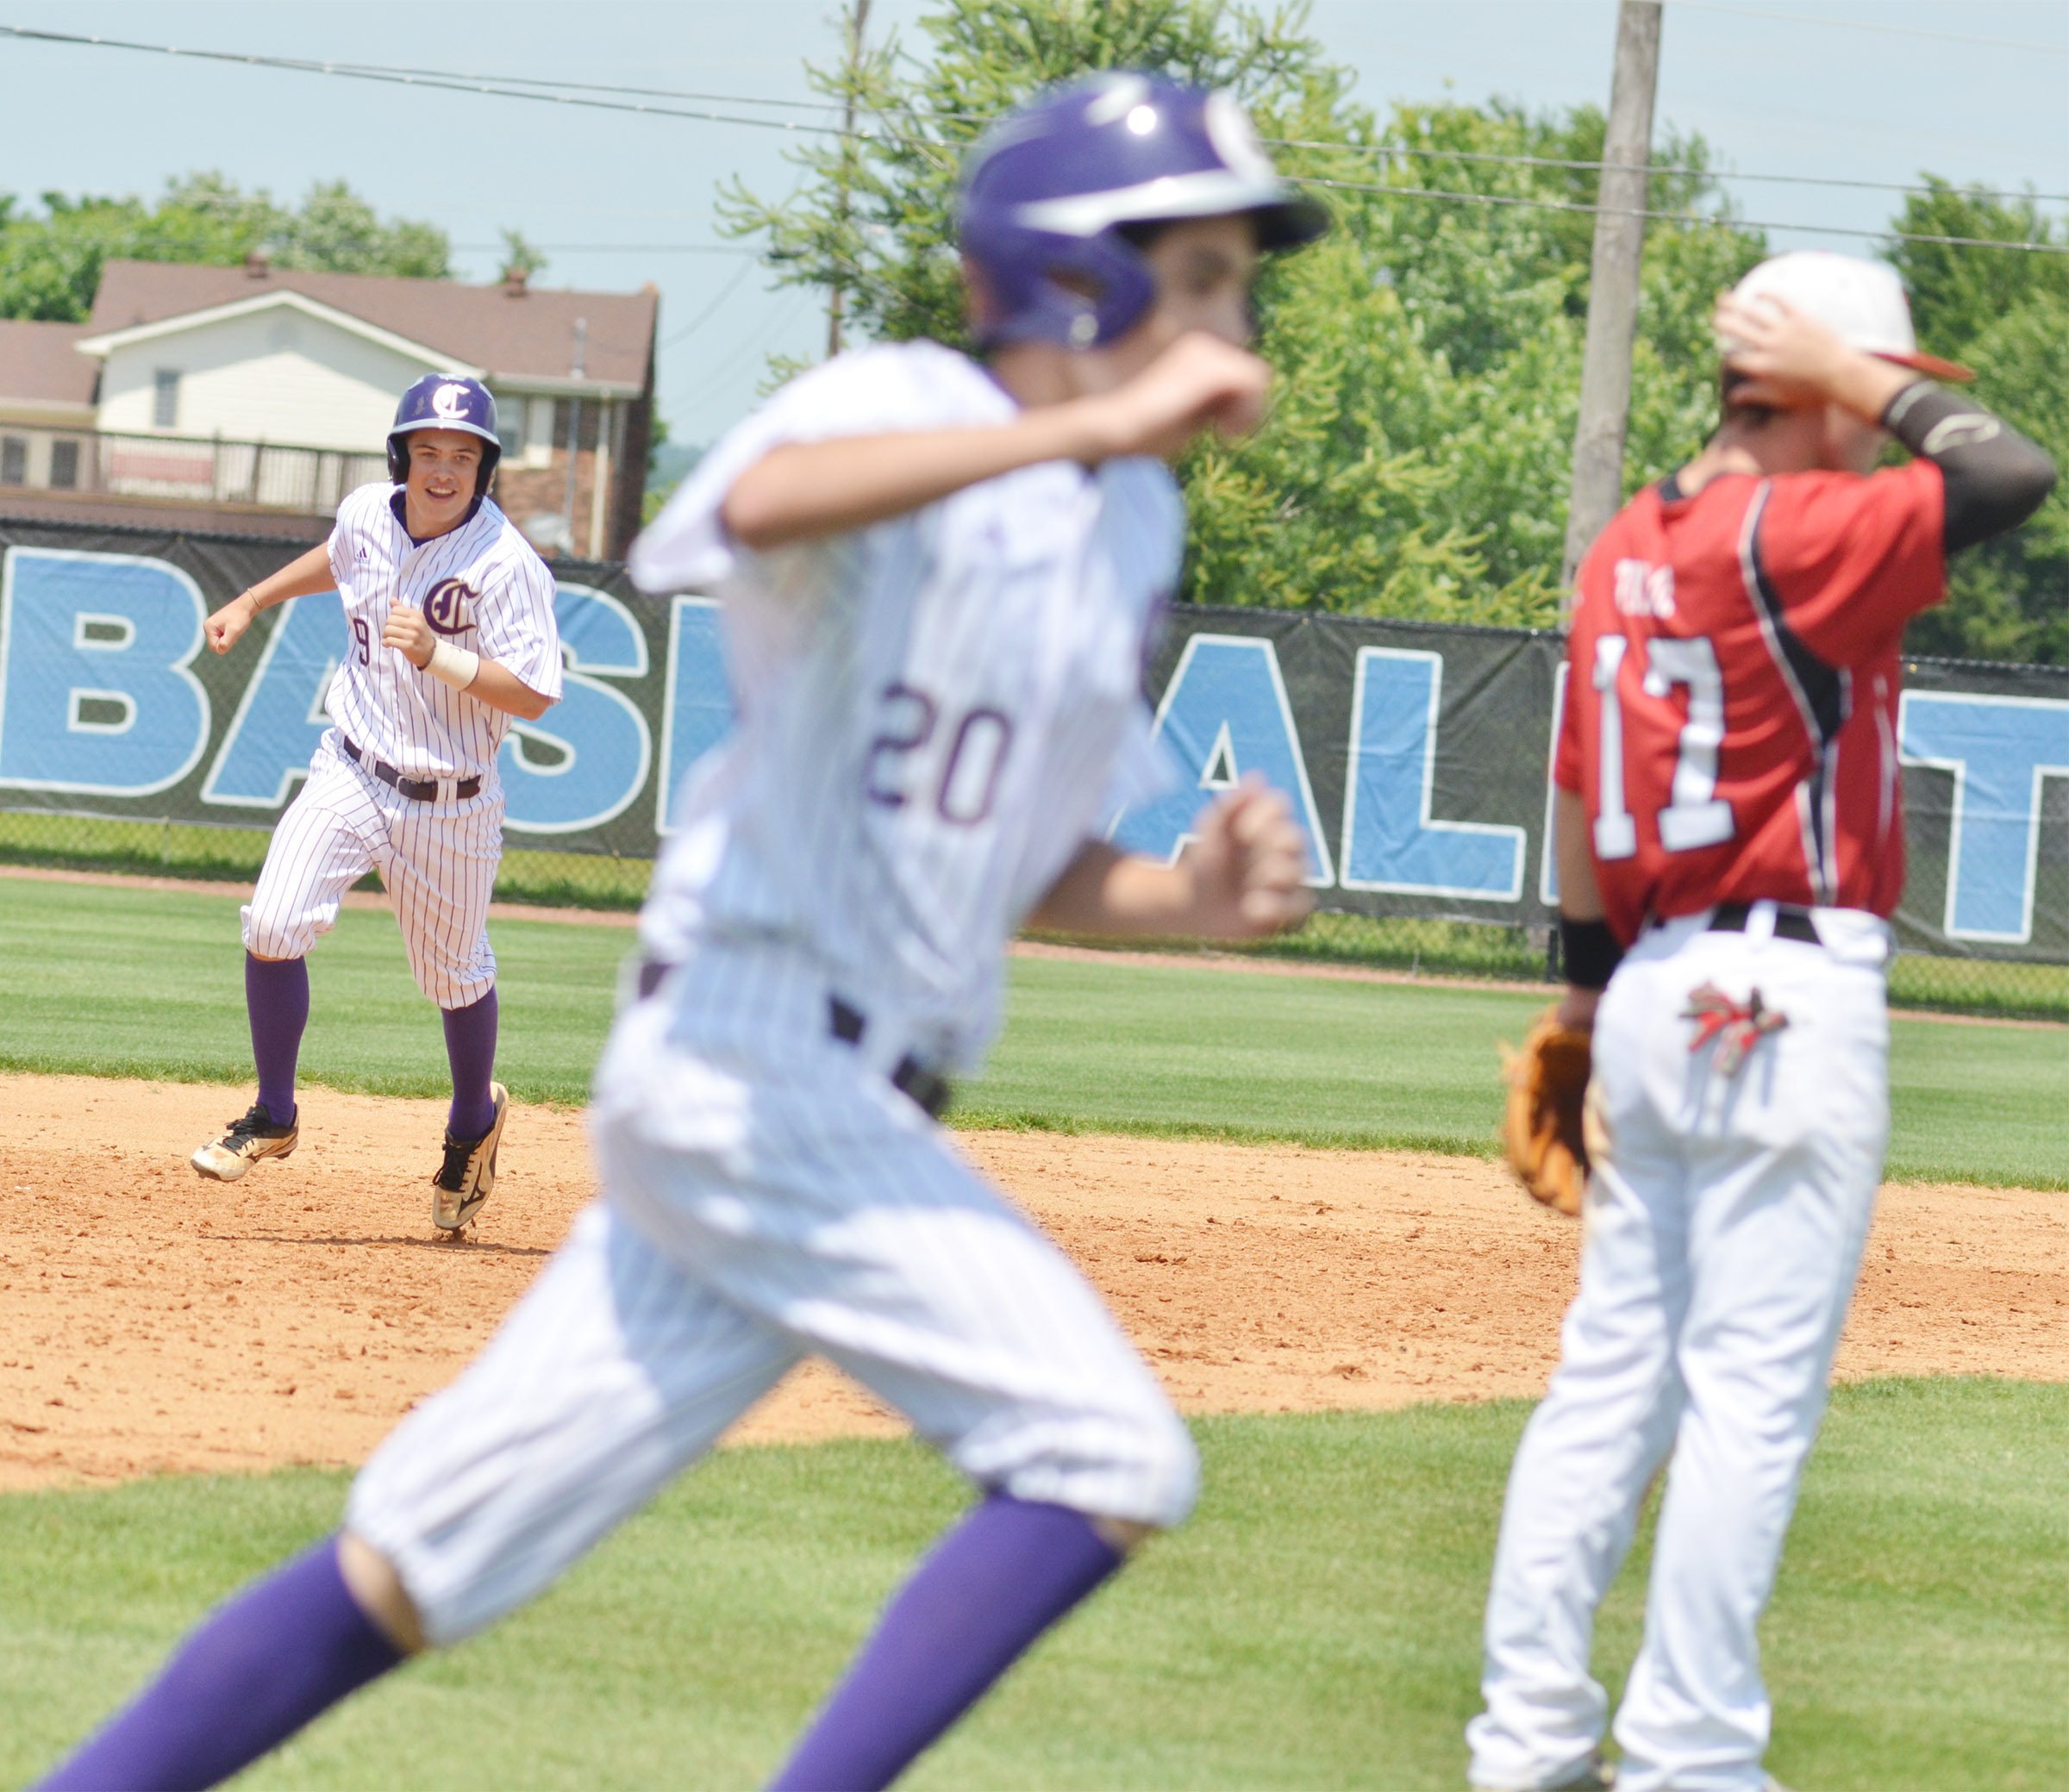 CHS sophomore Treyce Mattingly rounds the bases after hitting a three-run homerun.